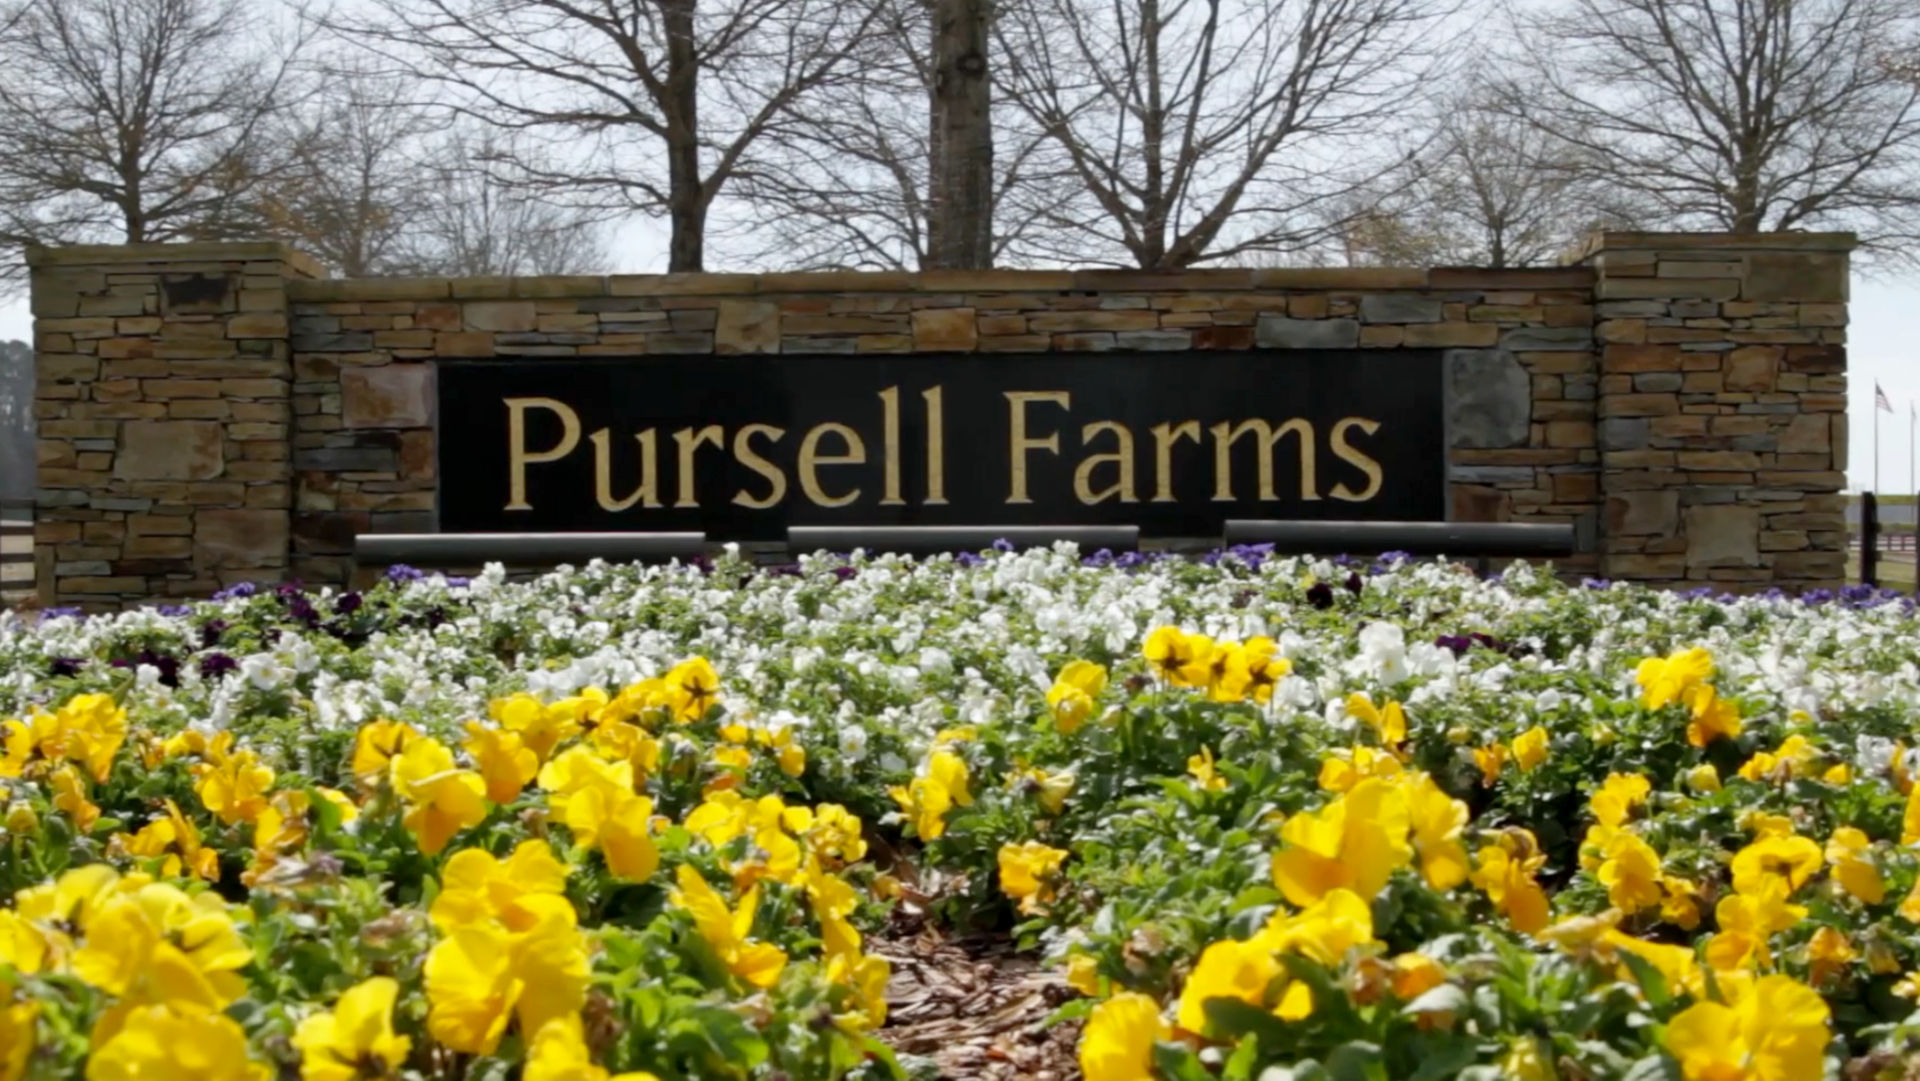 Pursell Farms sign nestled in a garden of flowers